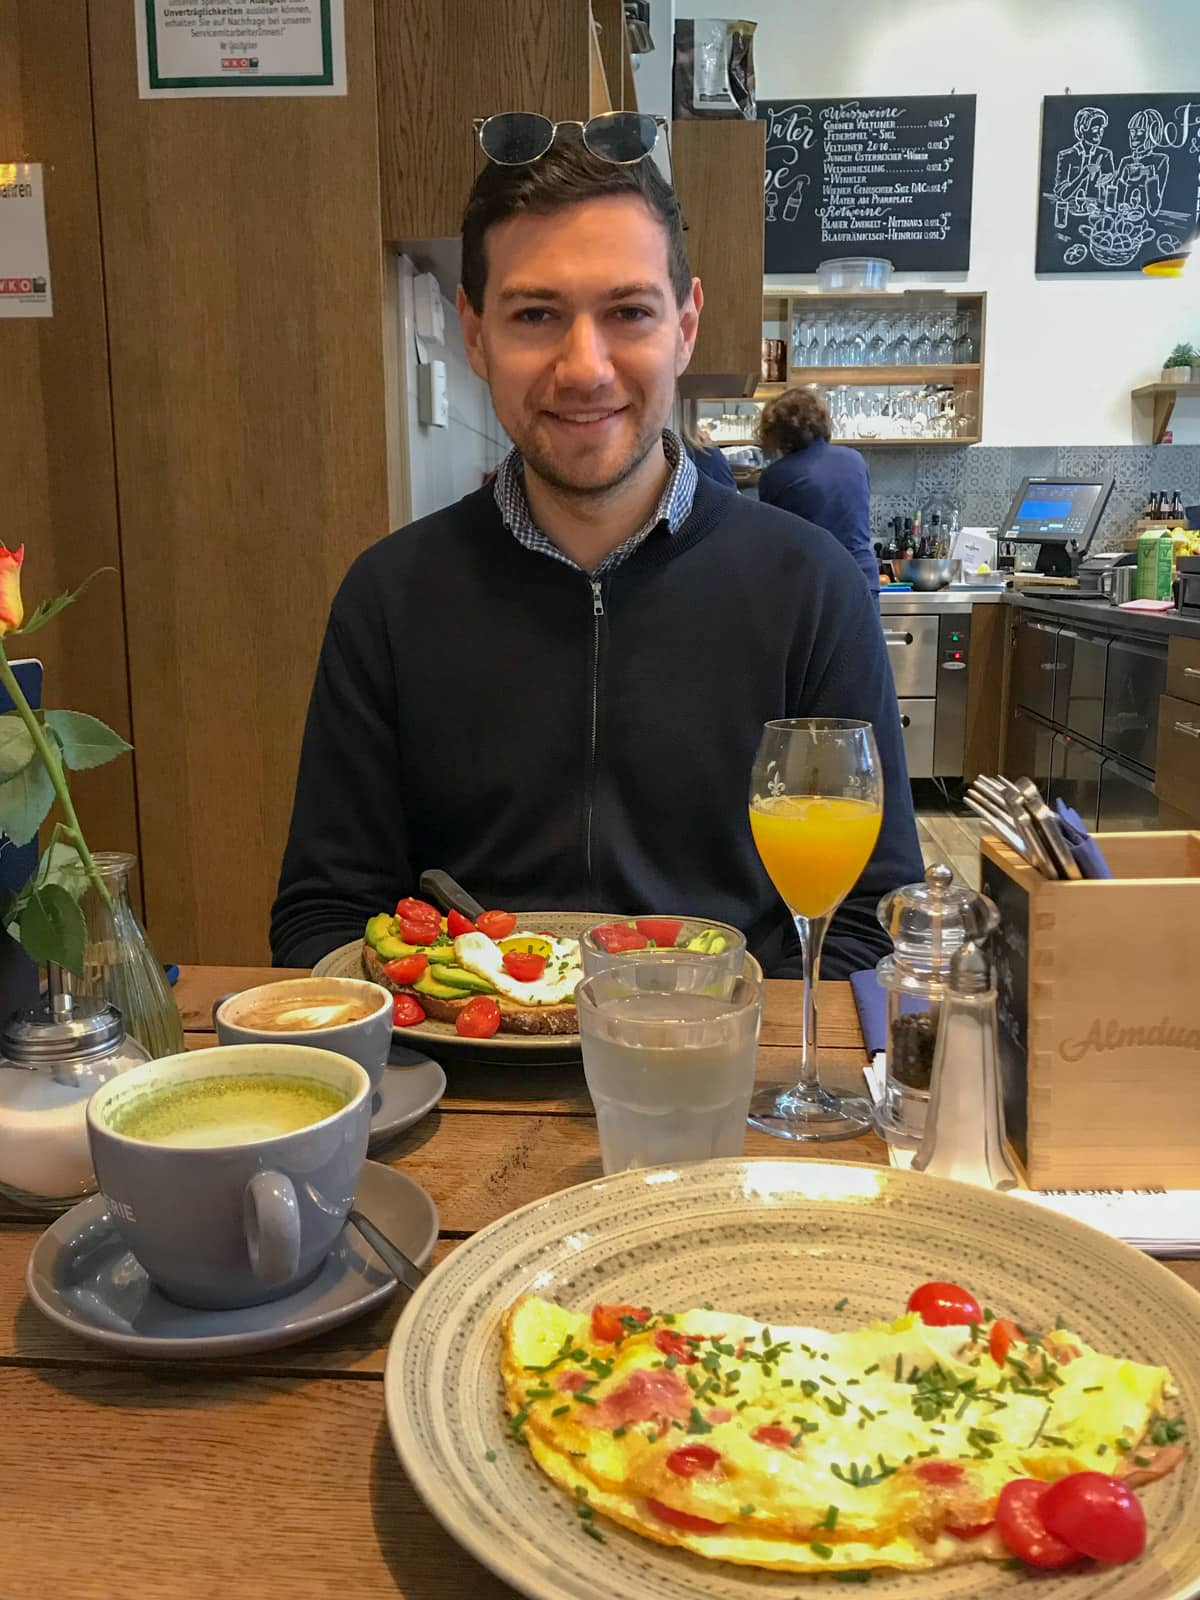 A man smiling, sitting at a table which has breakfast served. There are two plates, one with an omelette and the other with avocado on toast. There is orange juice in a glass and a couple of coffees on the table